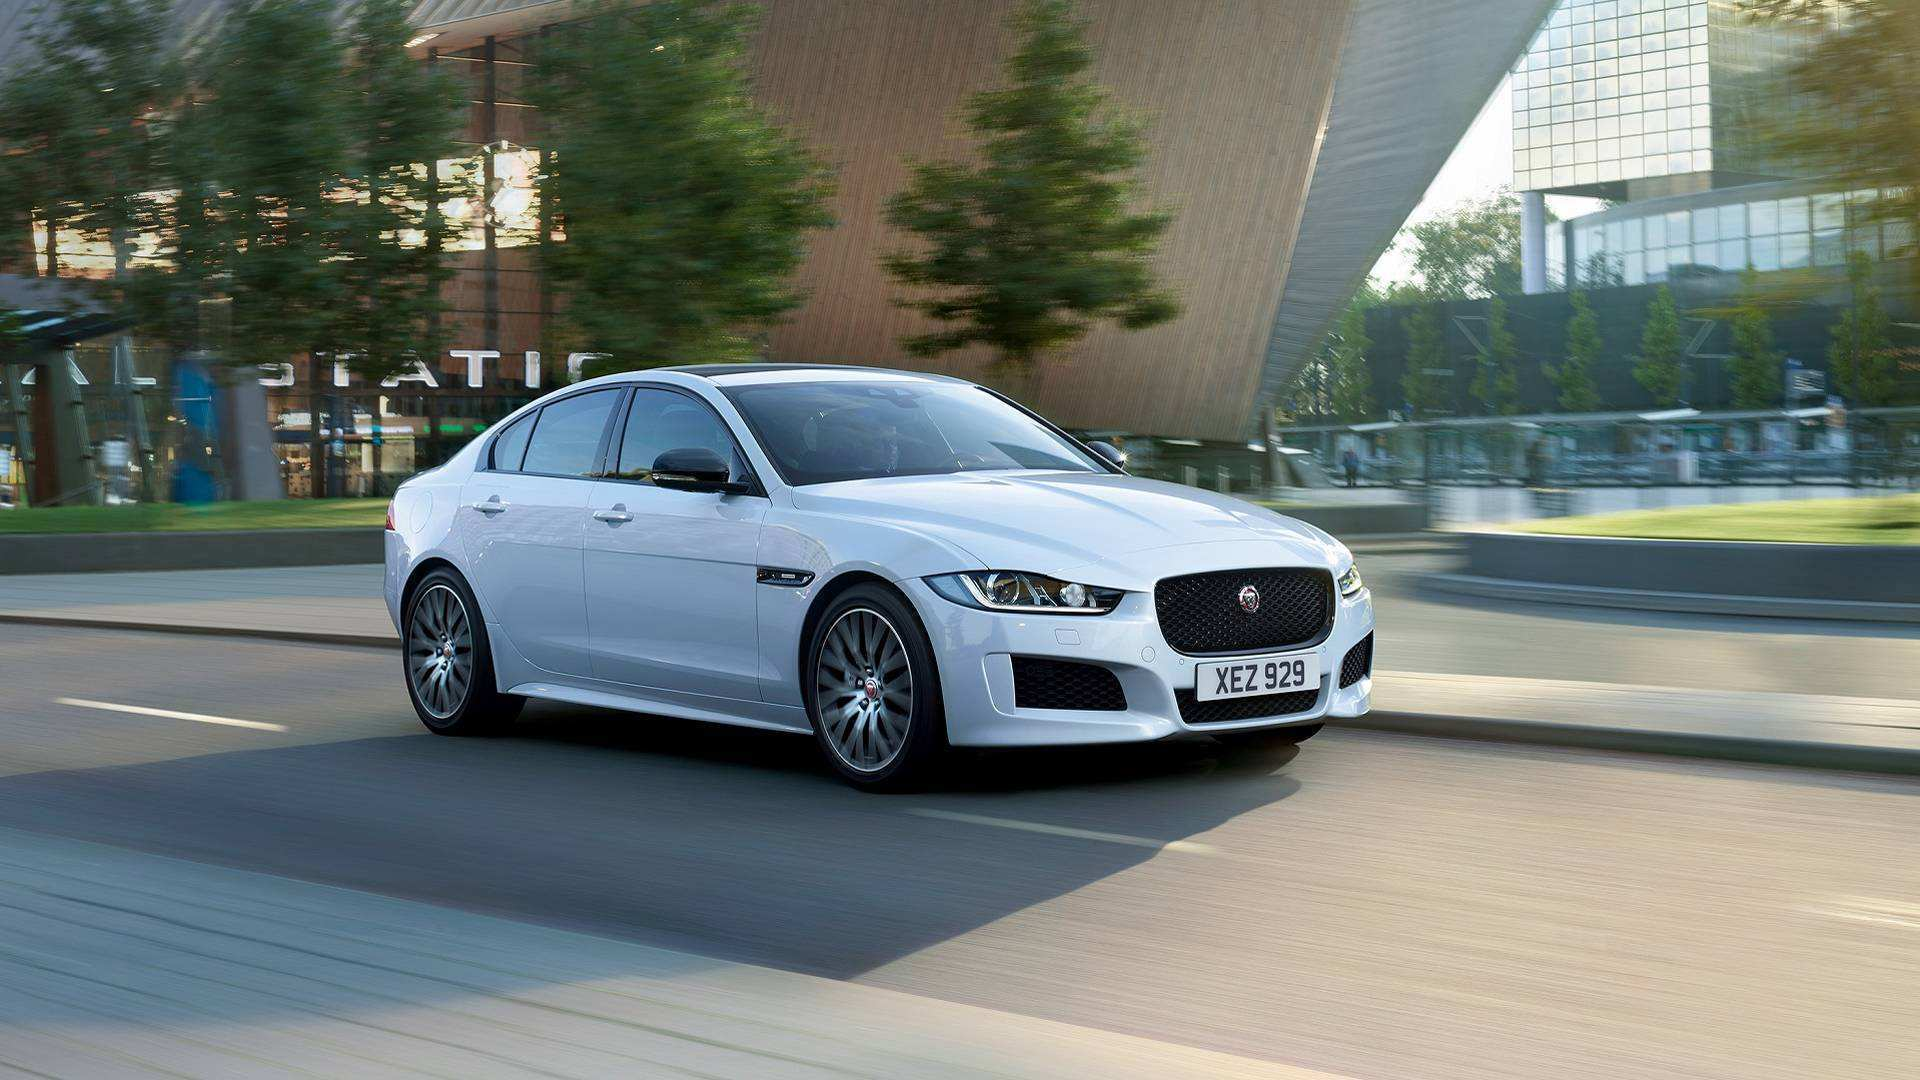 91 Best 2019 Jaguar XE Rumors